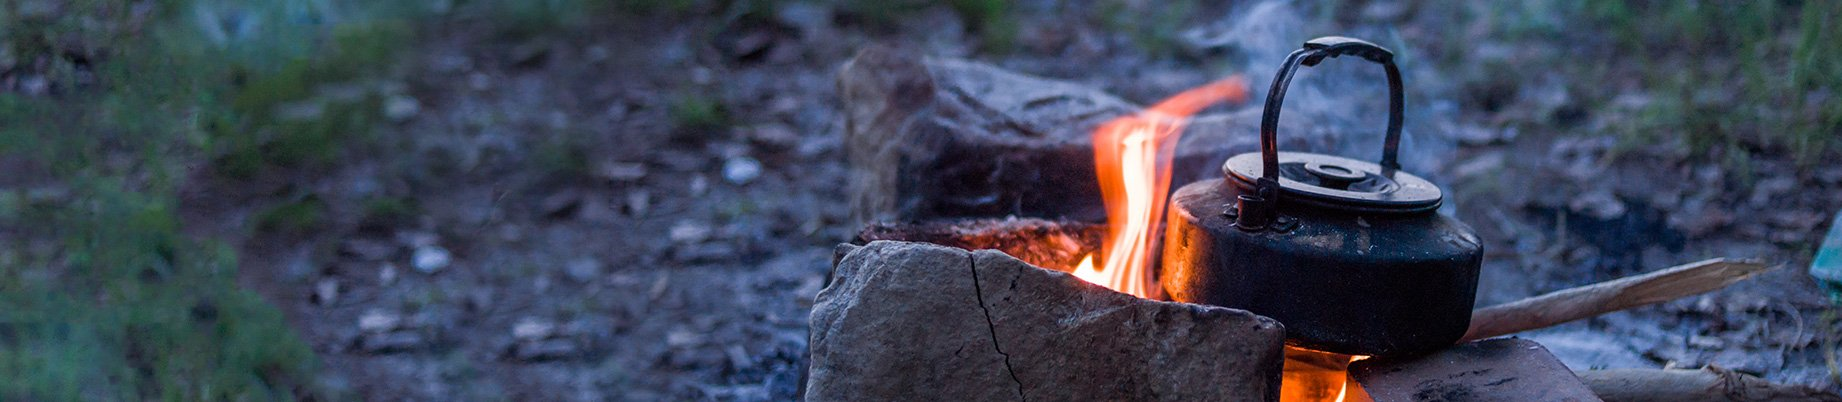 Top Breakfast Recipes You Can Make on The Fire